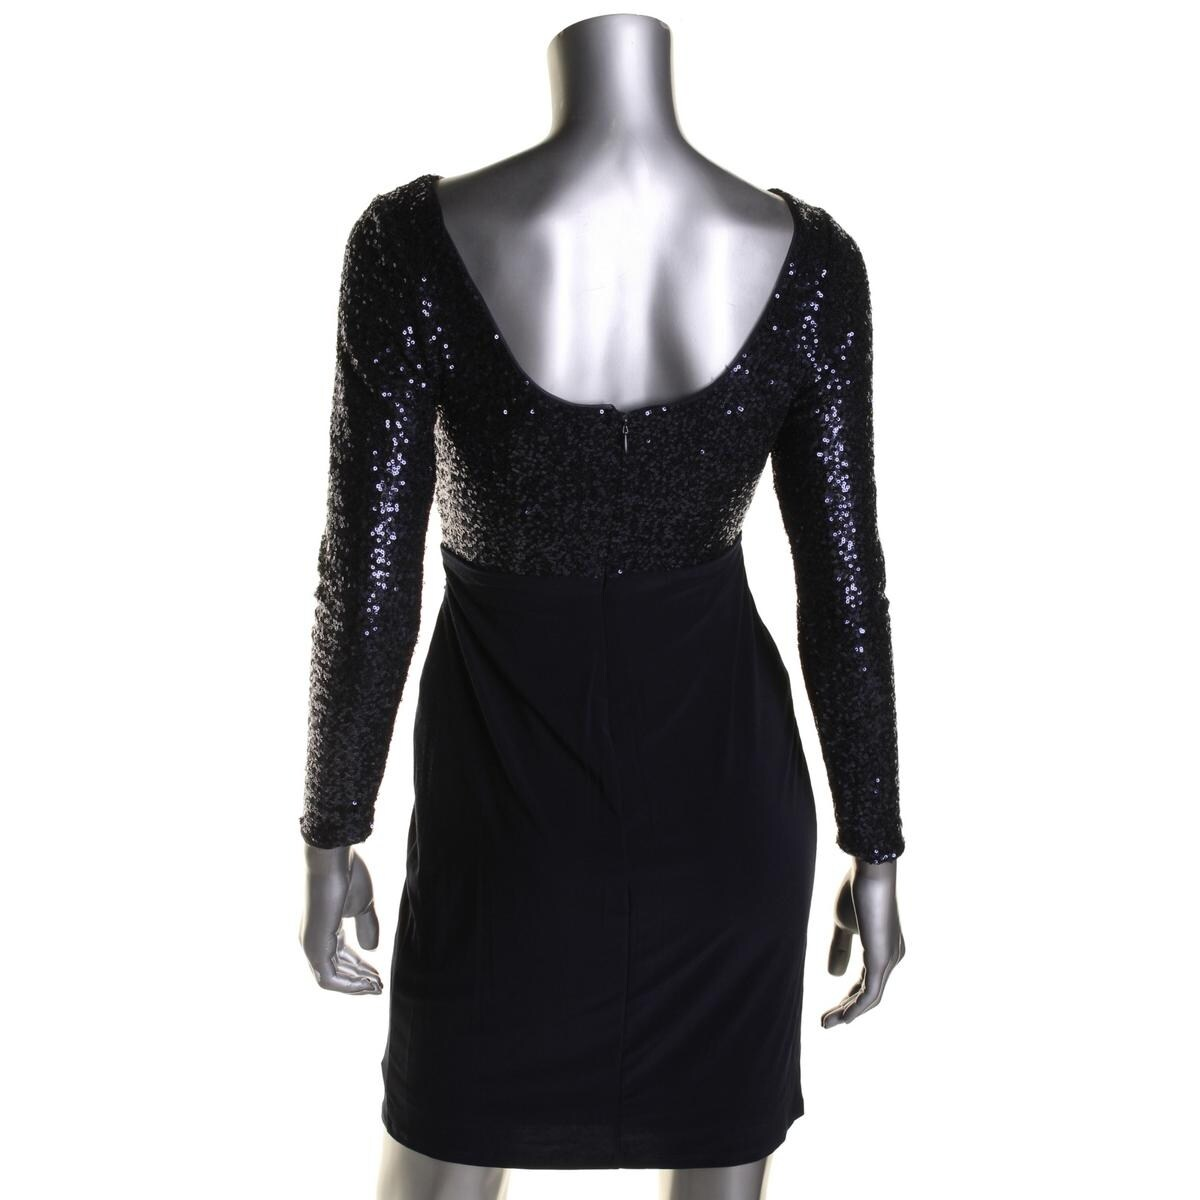 cef645e0 Shop Lauren Ralph Lauren Womens Petites Cocktail Dress Sequined Long Sleeve  - Free Shipping On Orders Over $45 - Overstock - 18406399